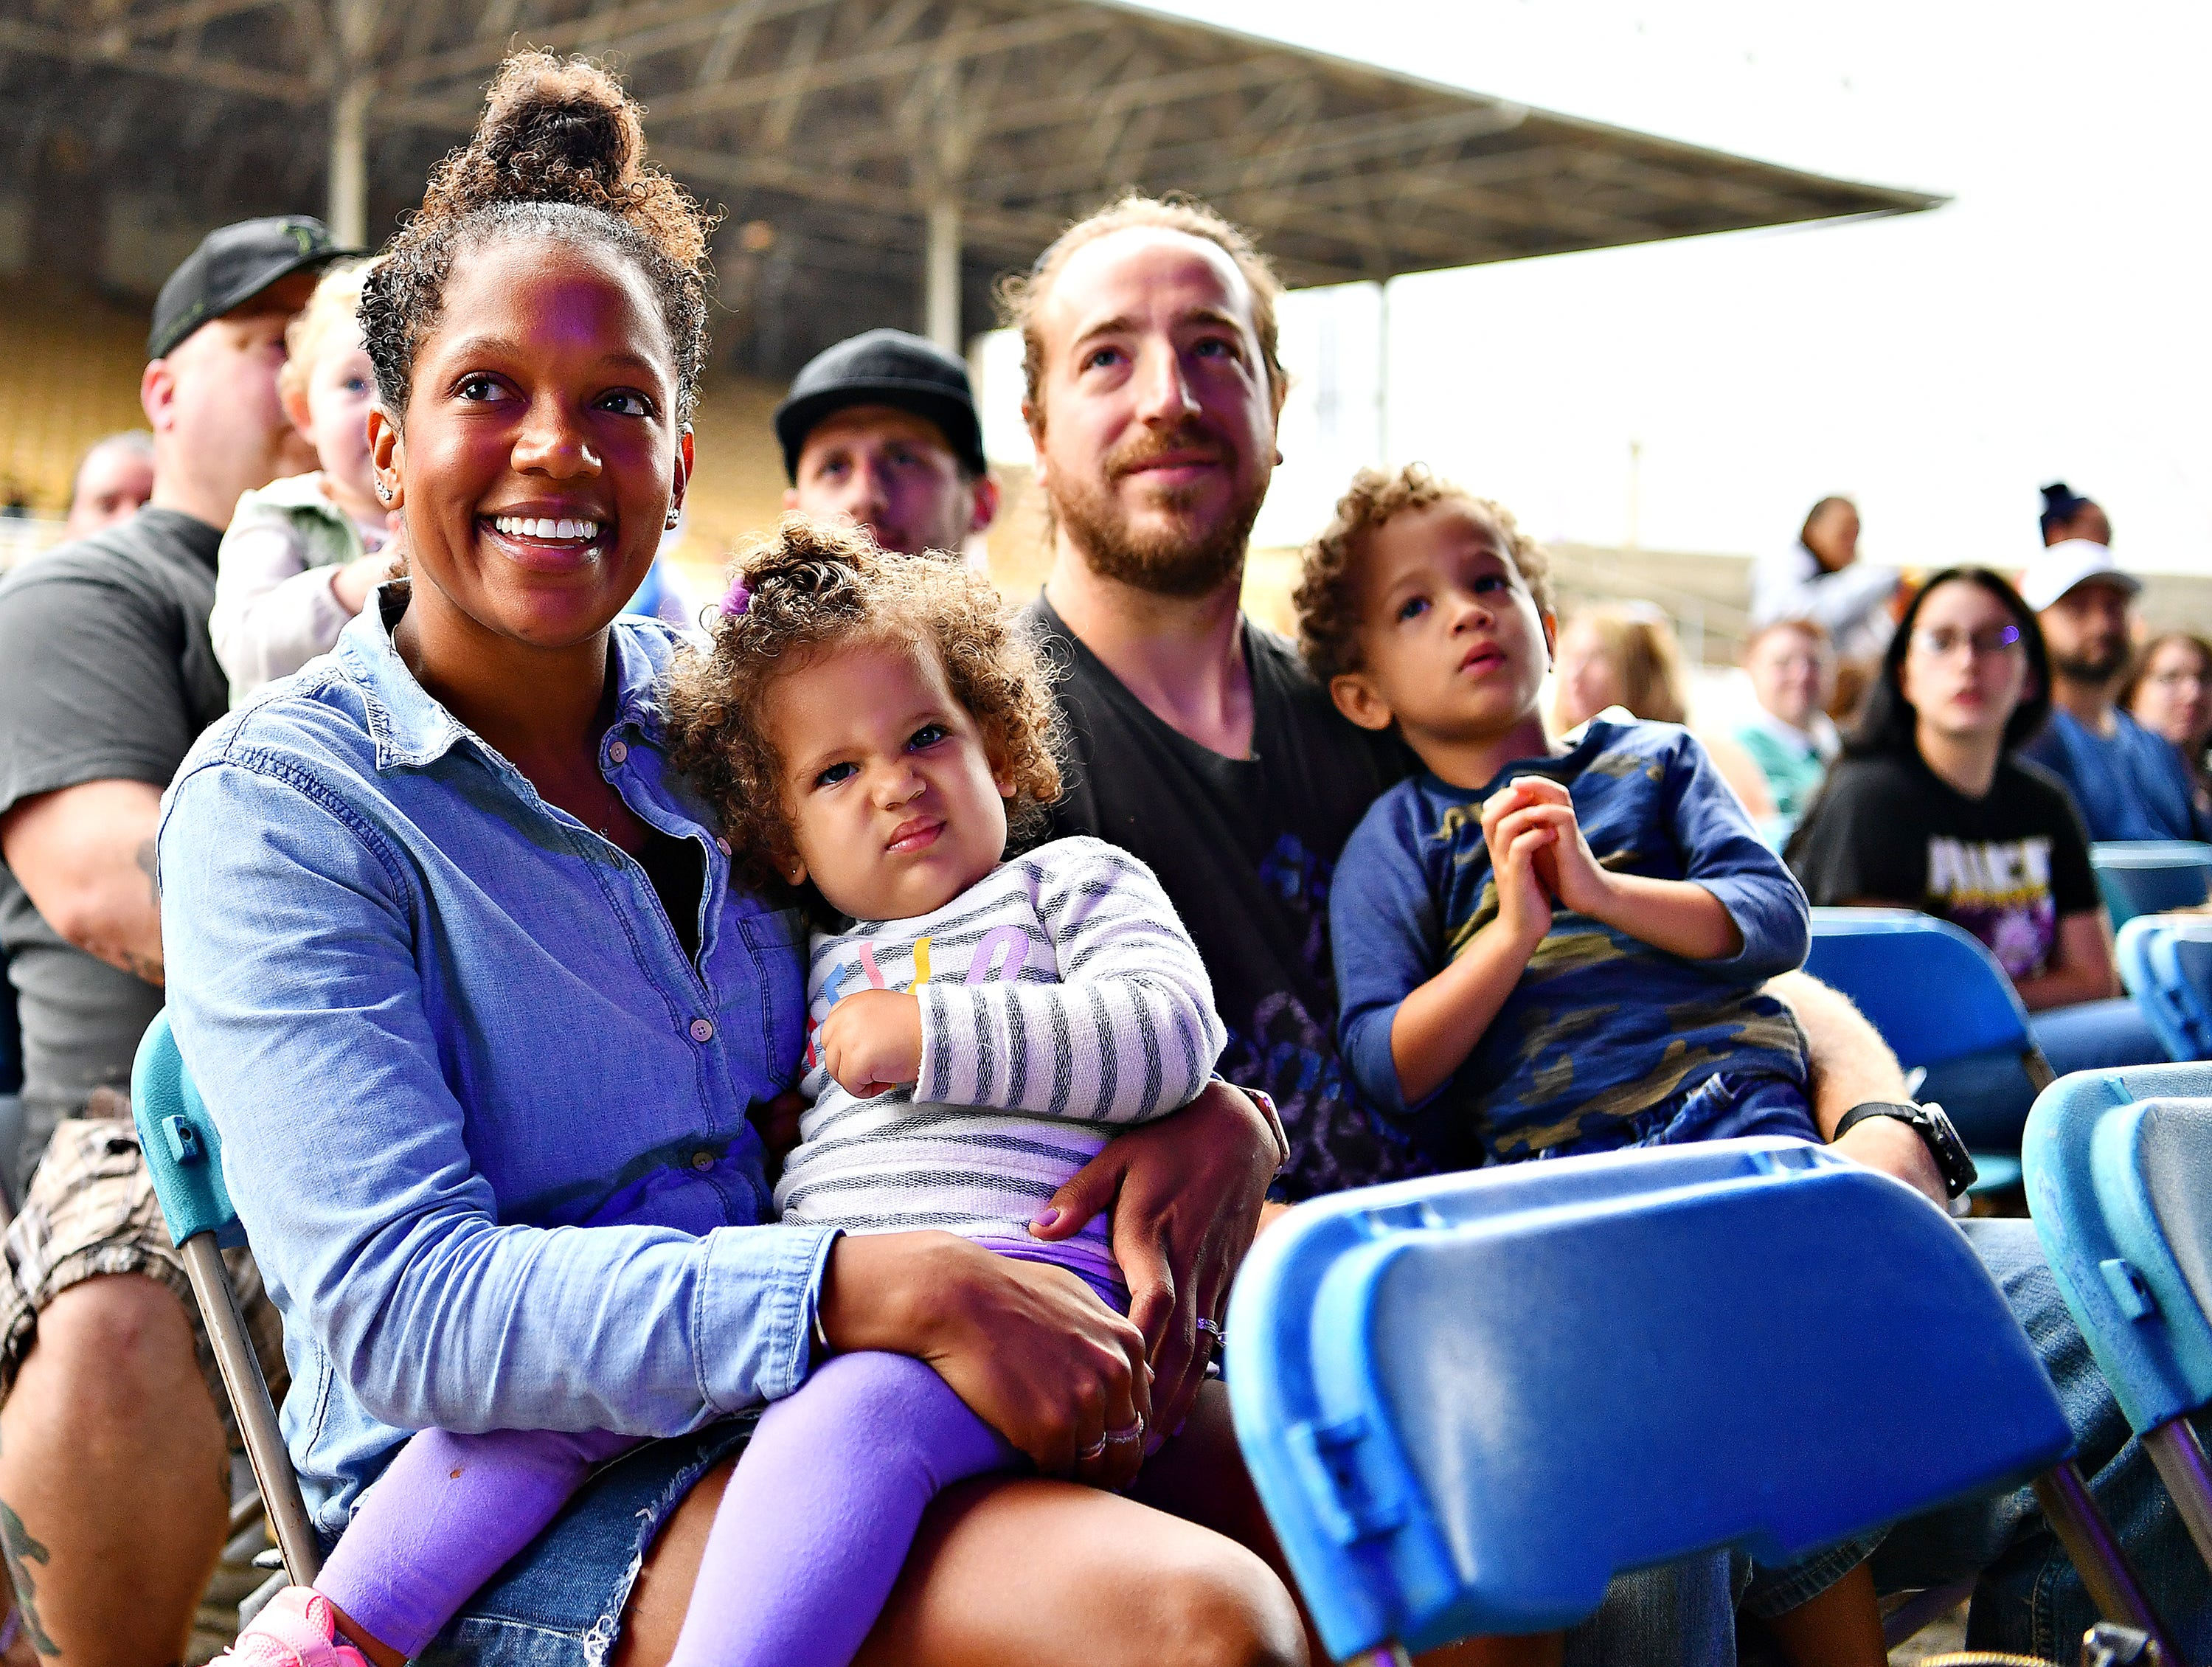 From left, Niki Raves, Rayna Raves, 1, Ryan Raves, and Jameson Raves, 3, all of New Bloomsfield in Perry County, look on during the early performance of Sesame Street Live at York Fair, Saturday, Sept. 8, 2018. Dawn J. Sagert photo